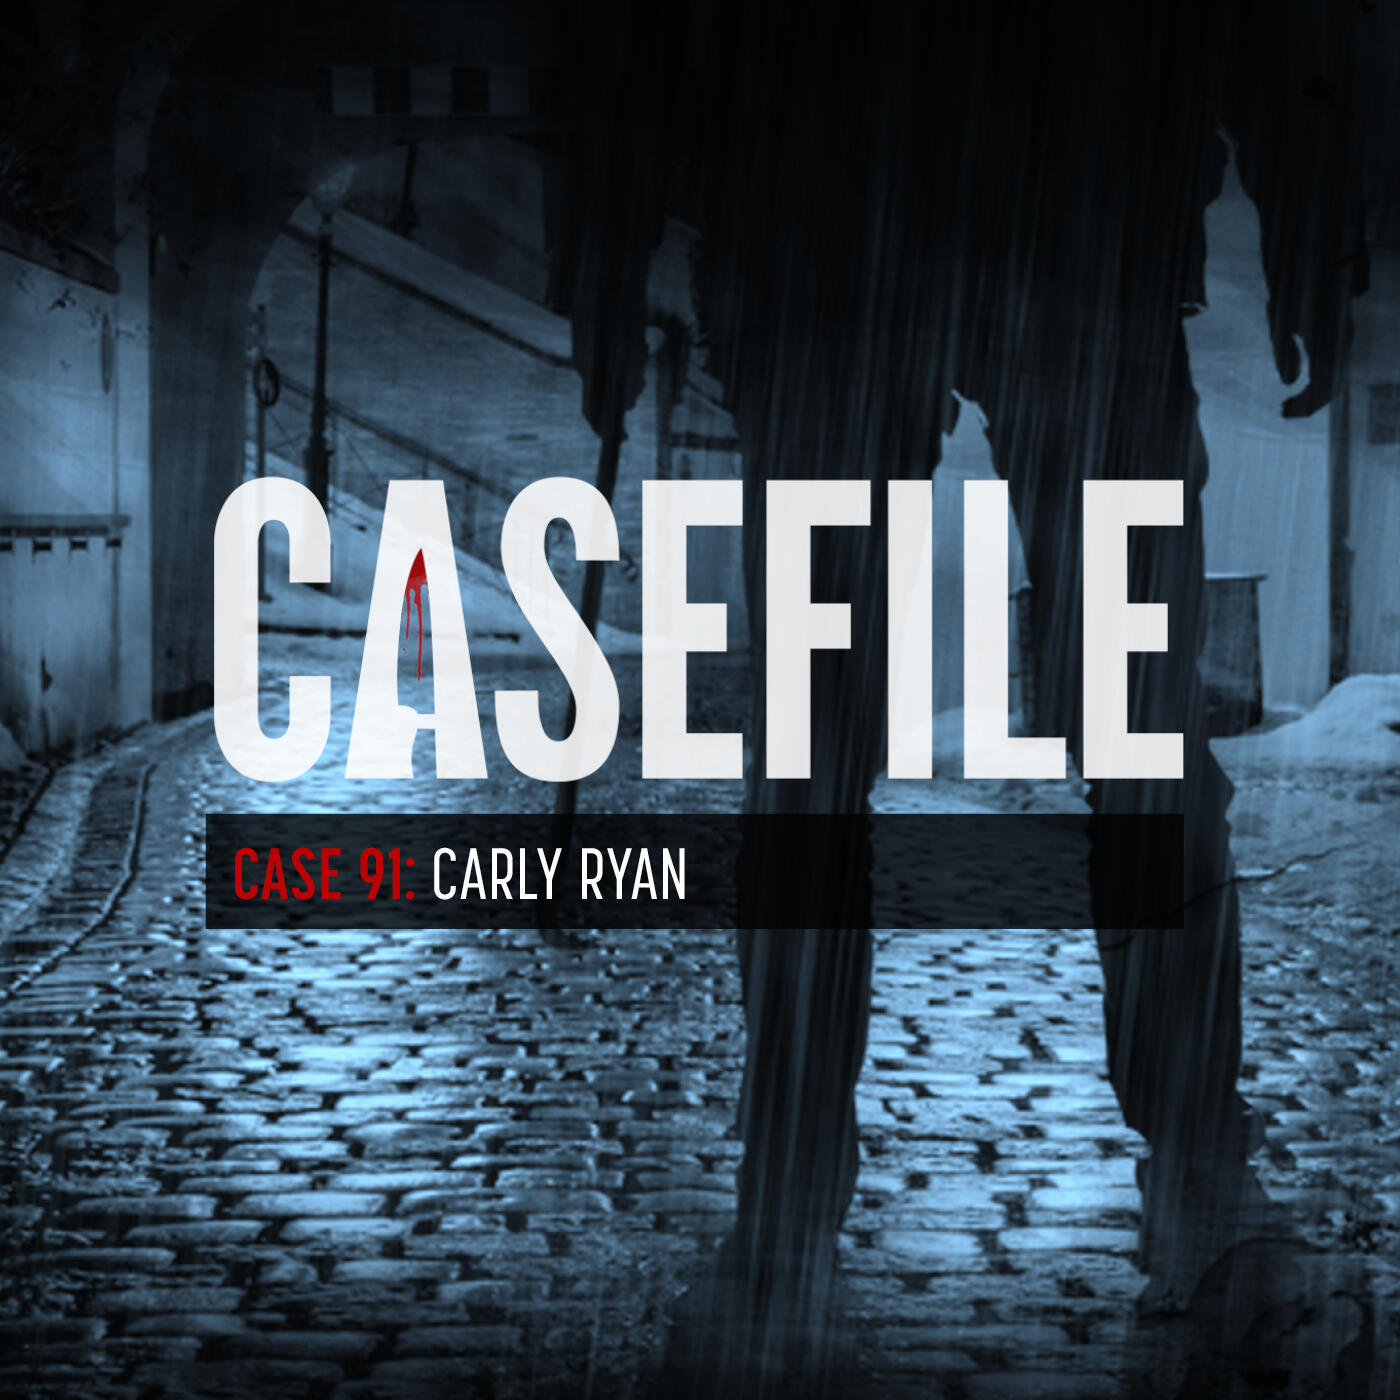 Case 91: Carly Ryan